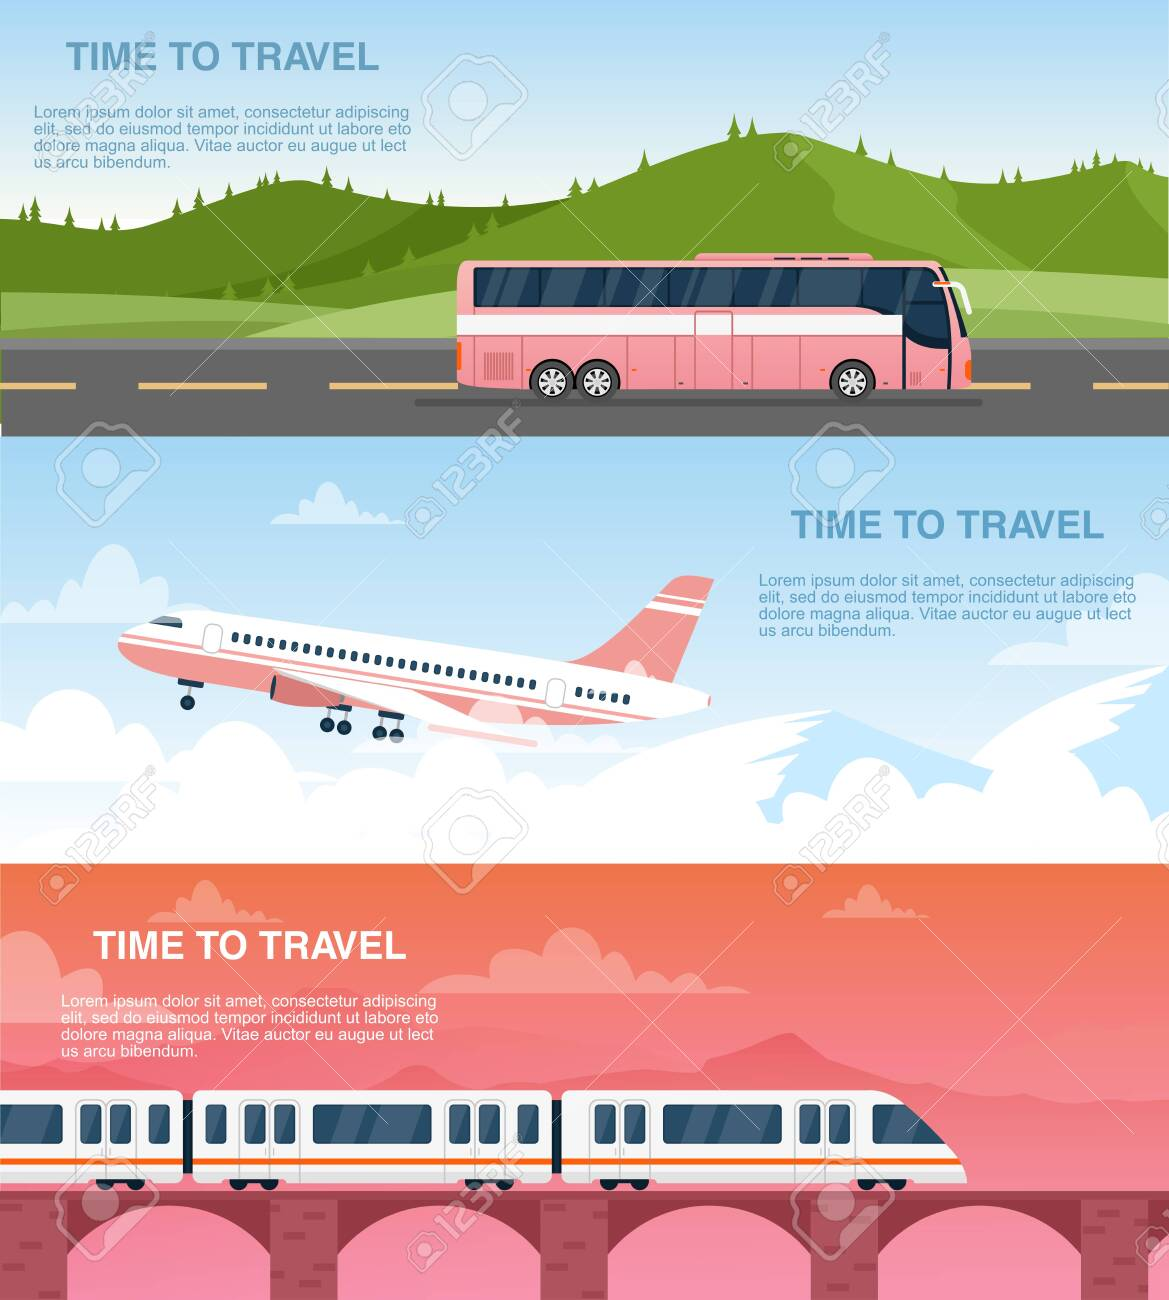 Time to travel web banner vector templates set. Tourist agency advertisement designs pack. Airway, railway and road transportation. Airplane, bus and train cartoon illustrations with text space - 141293330